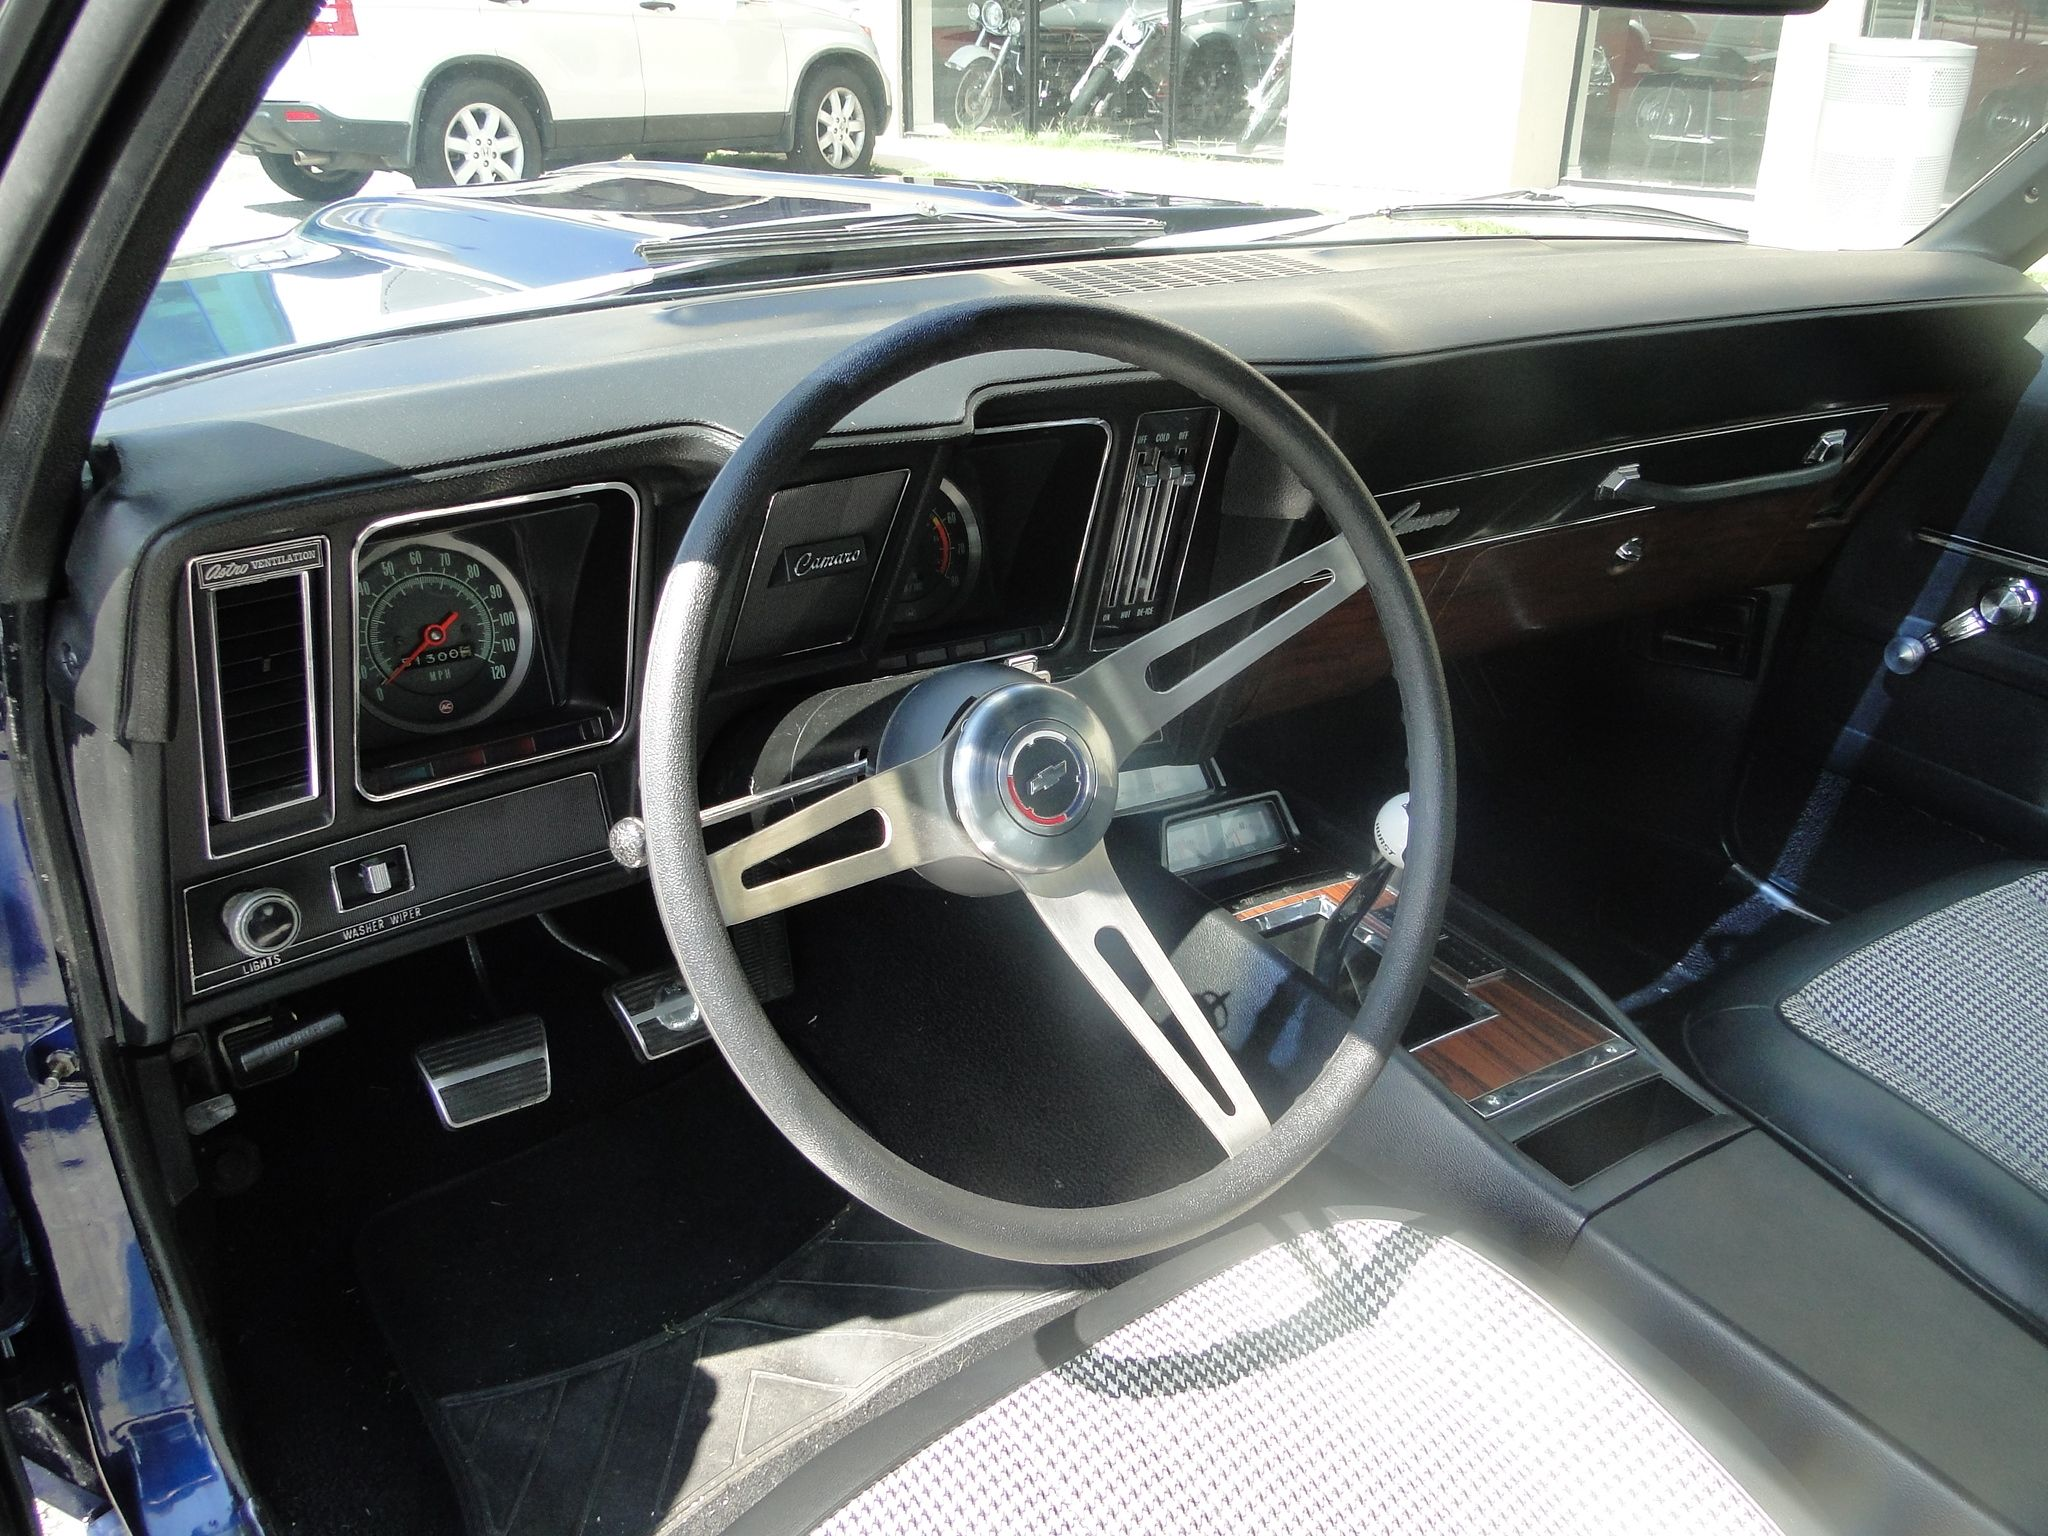 Come see this American Muscle Car legend for sale at bpmcars.com ...